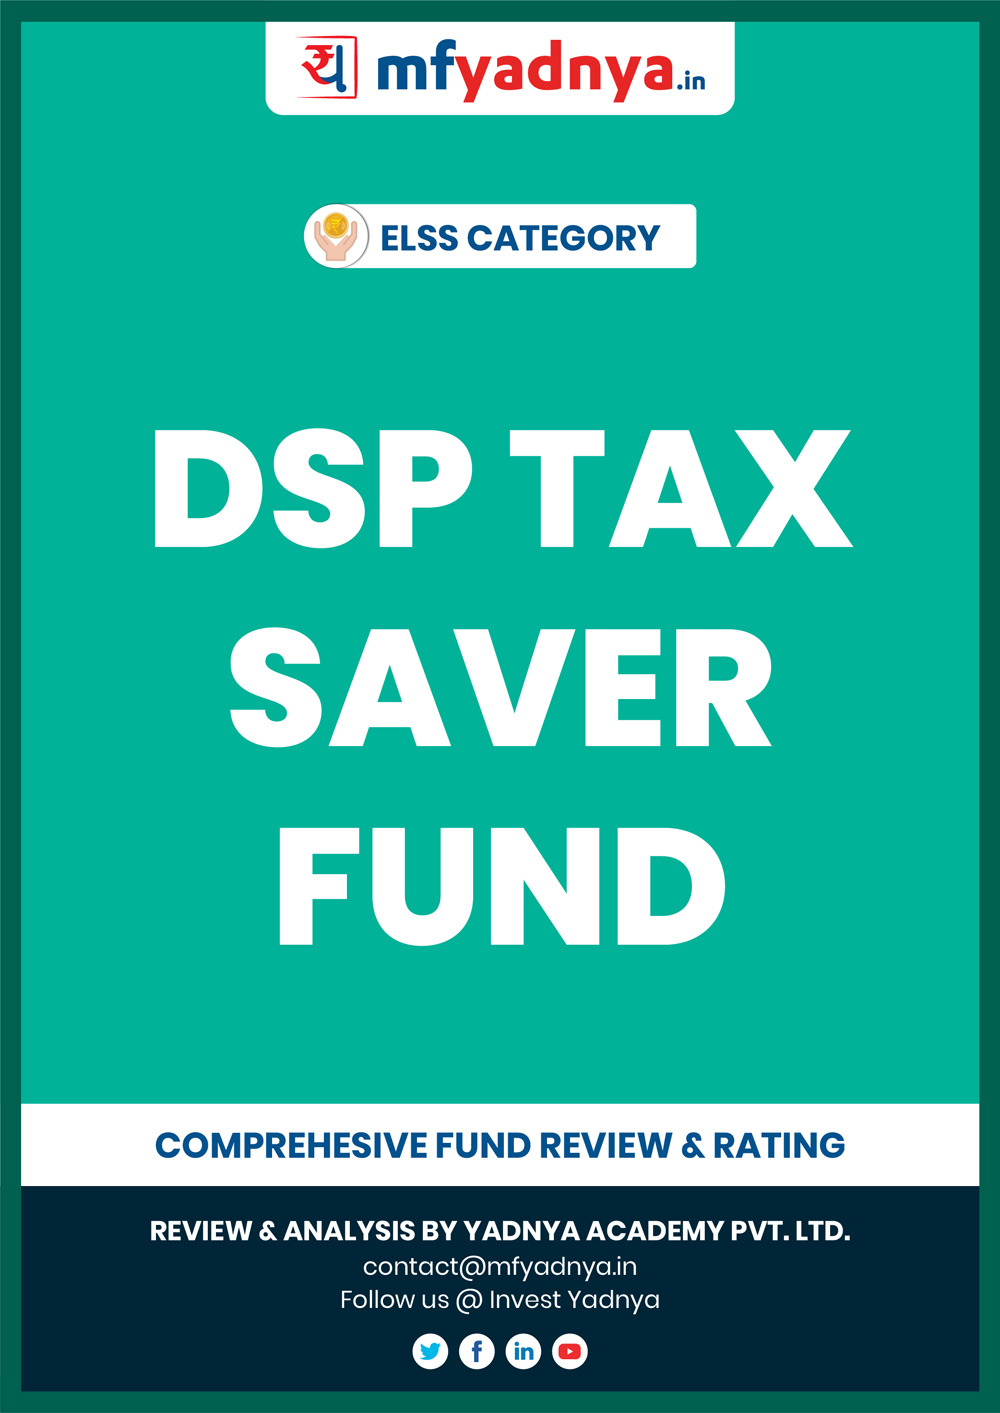 ELSS (Tax Saver) Category - DSP Tax Saver Fund Detailed Analysis & Review based on Jan 31st, 2020 data. Most Comprehensive and detailed review based on Yadnya's proprietary methodology of Green, Yellow & Red Star.